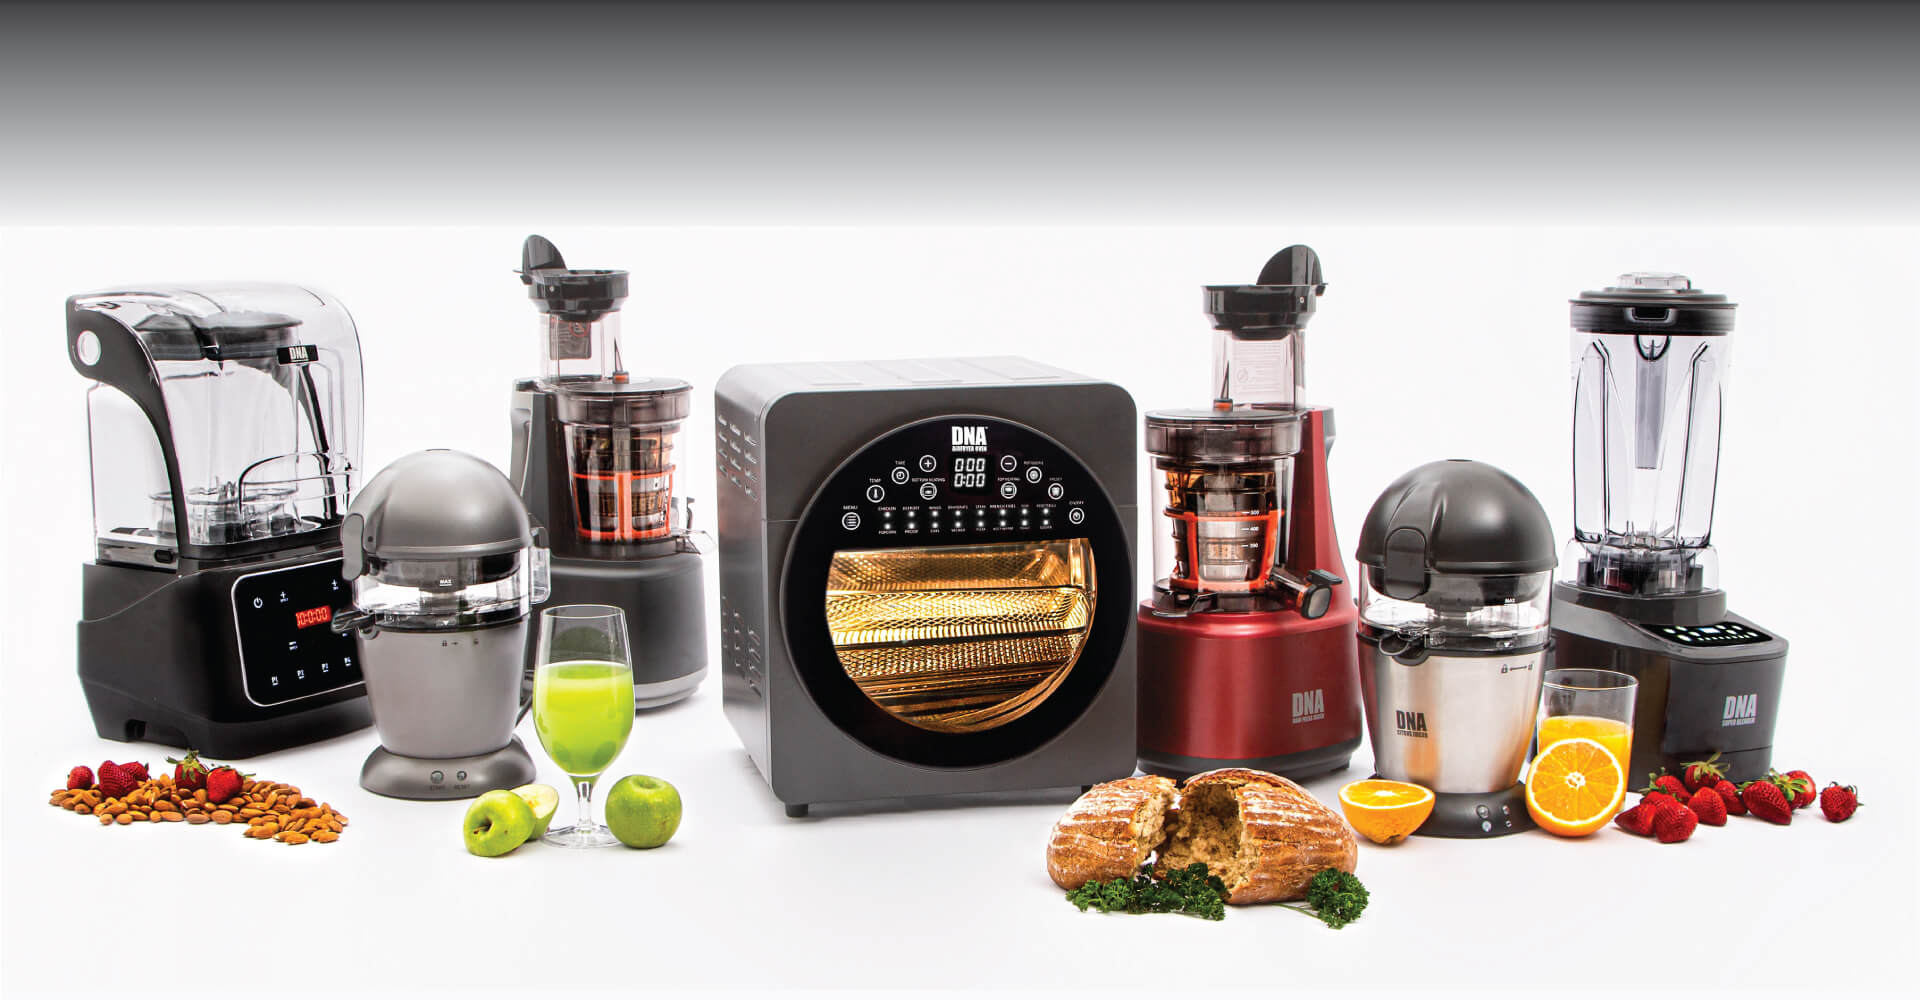 DNA Juicer Range